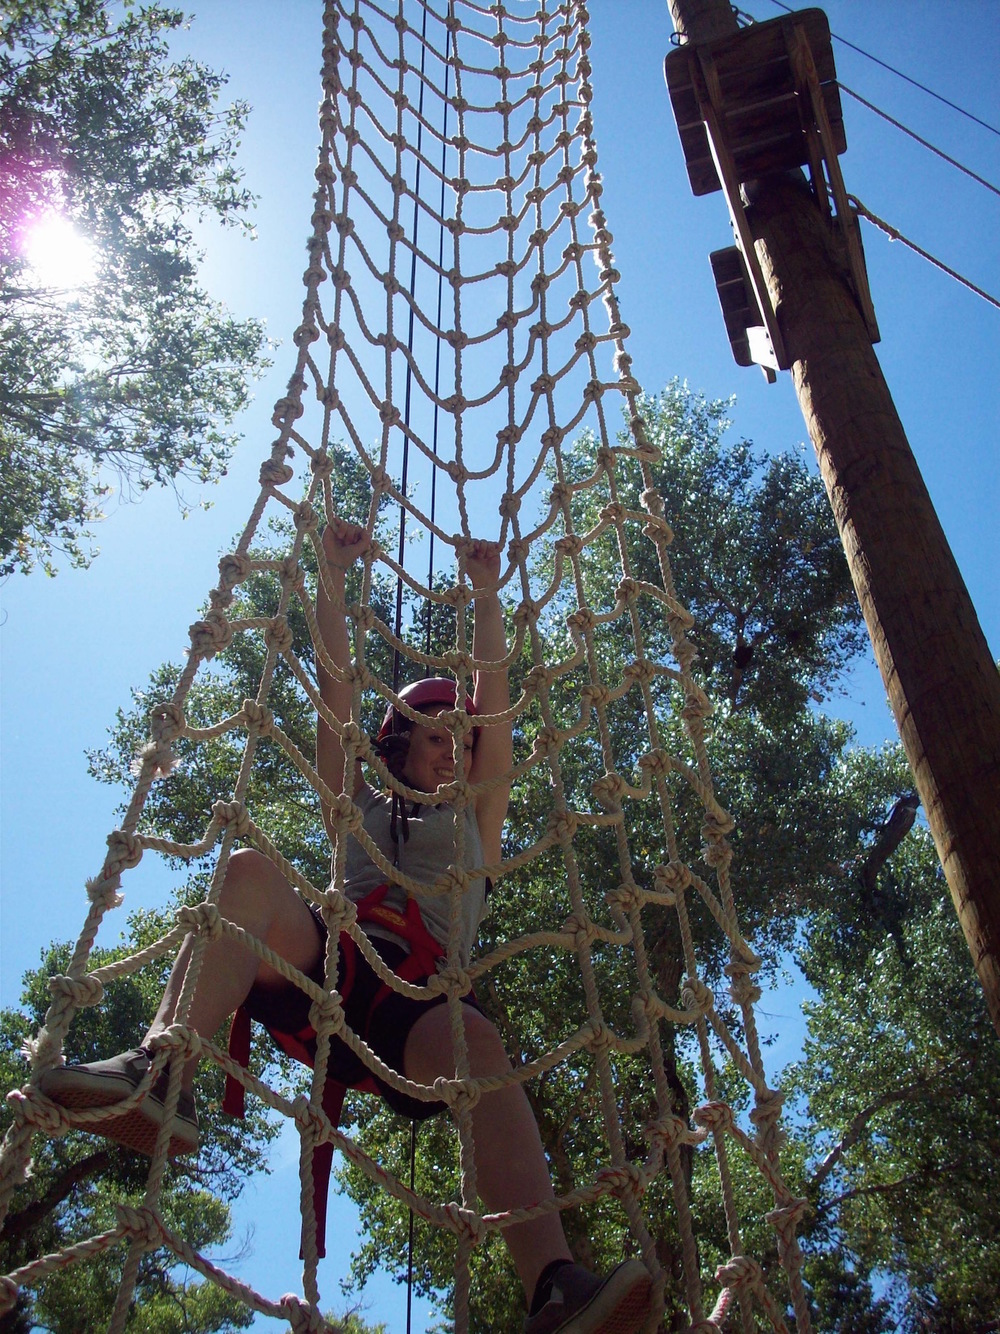 Cargo Net, an activity from our ropes course big adventure program